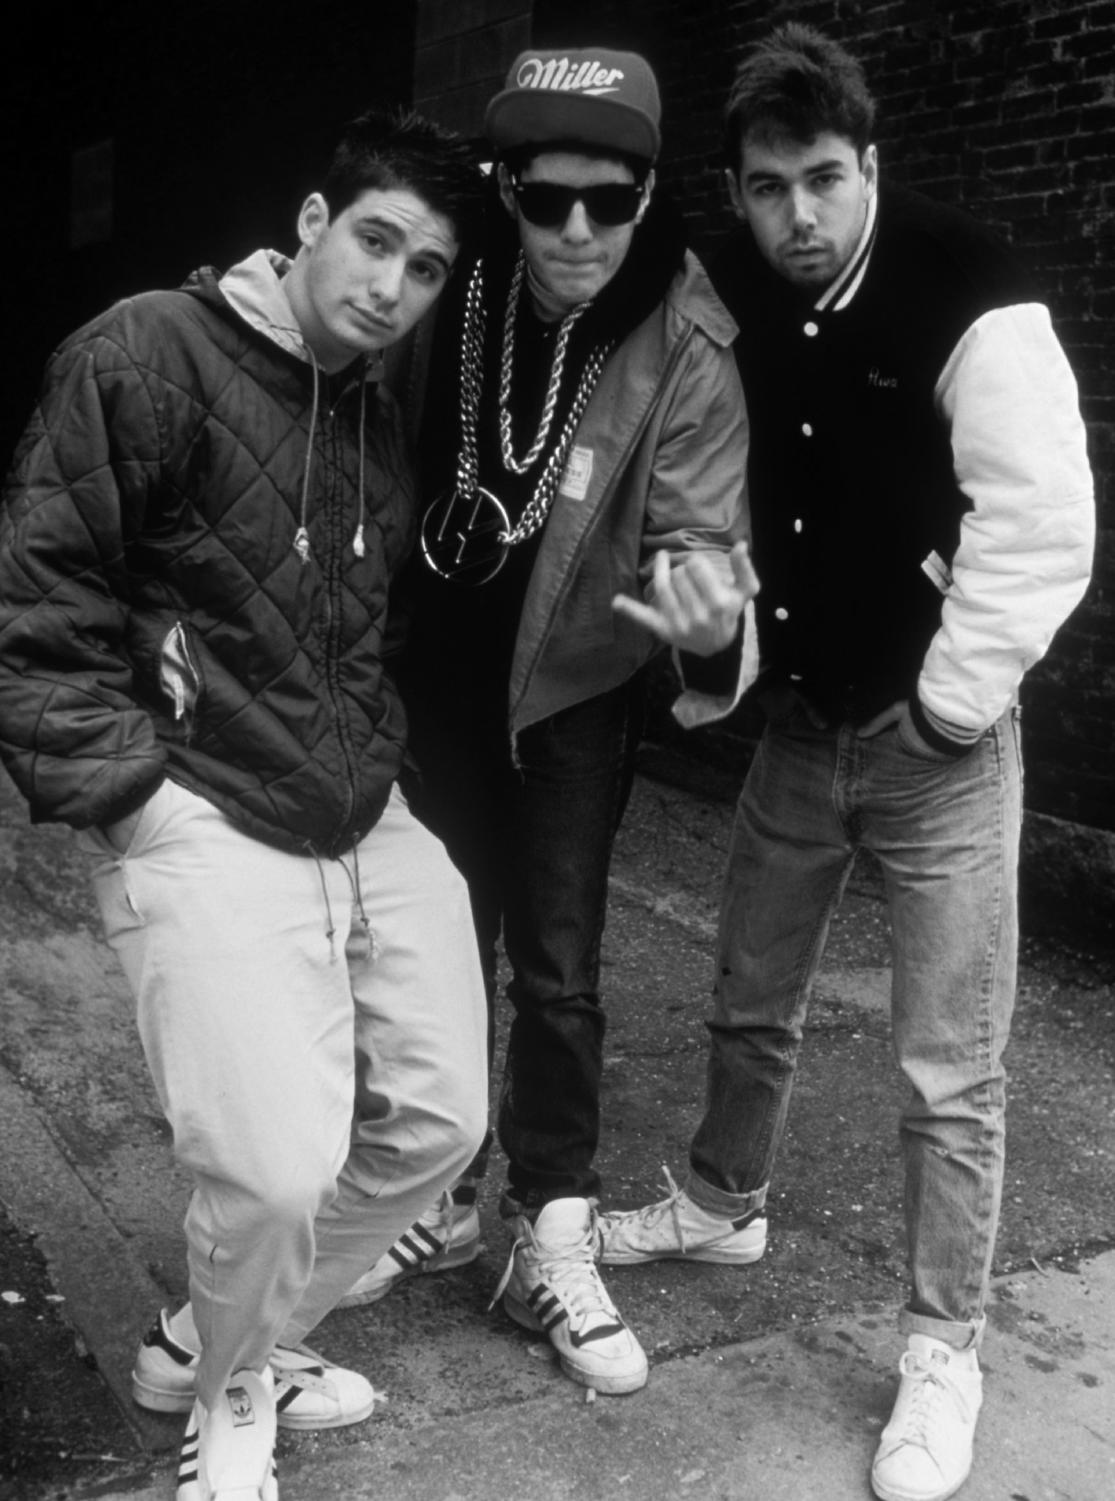 Pass the mic: The Beastie Boys helped make rap a worldwide phenomenon, but rap groups are rare today.